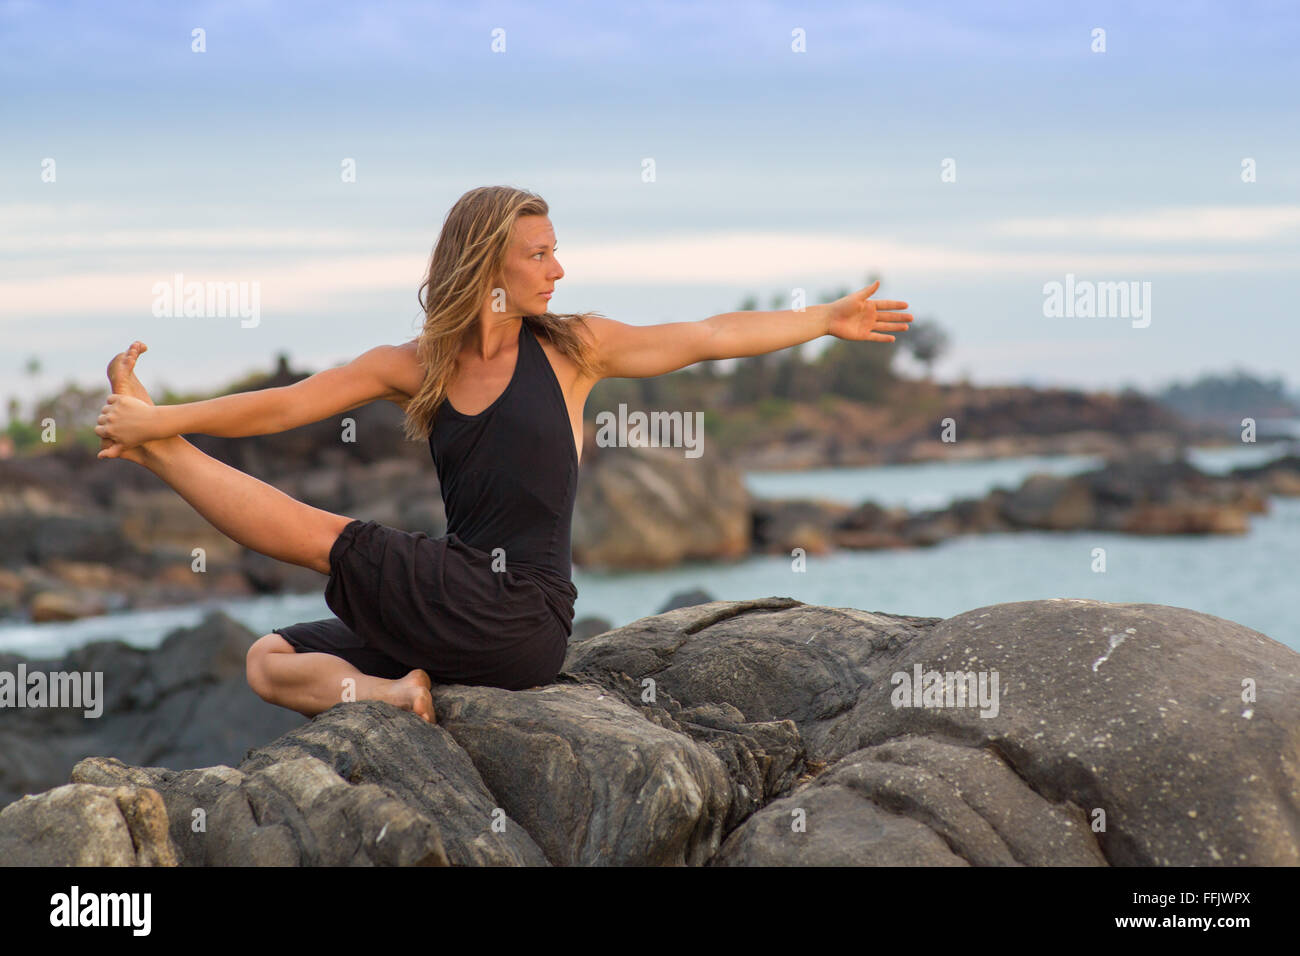 Yoga girl by ocean - Stock Image